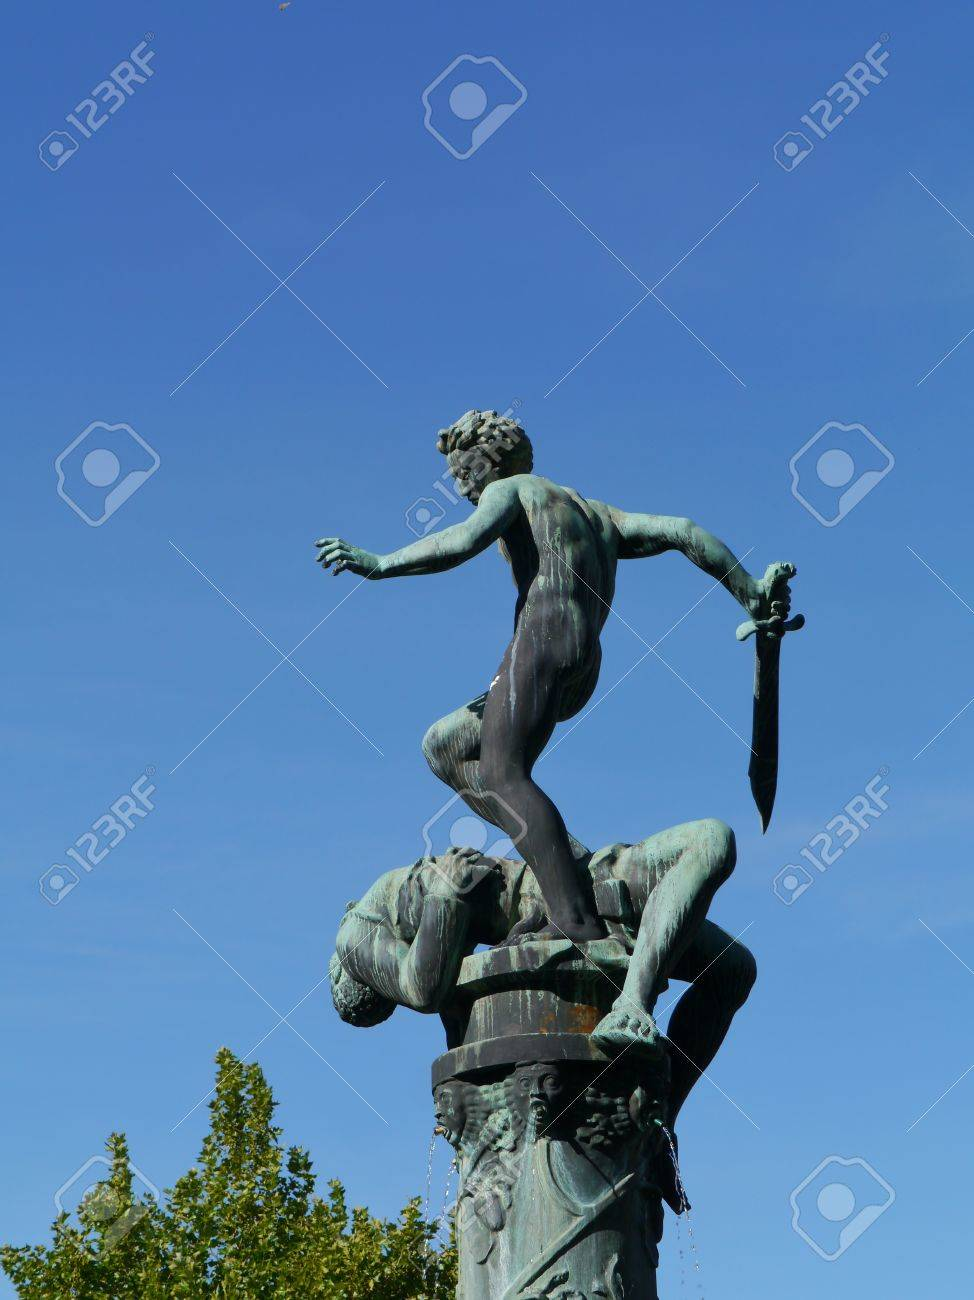 a fountain with a sculpture david and goliath of bronze in the